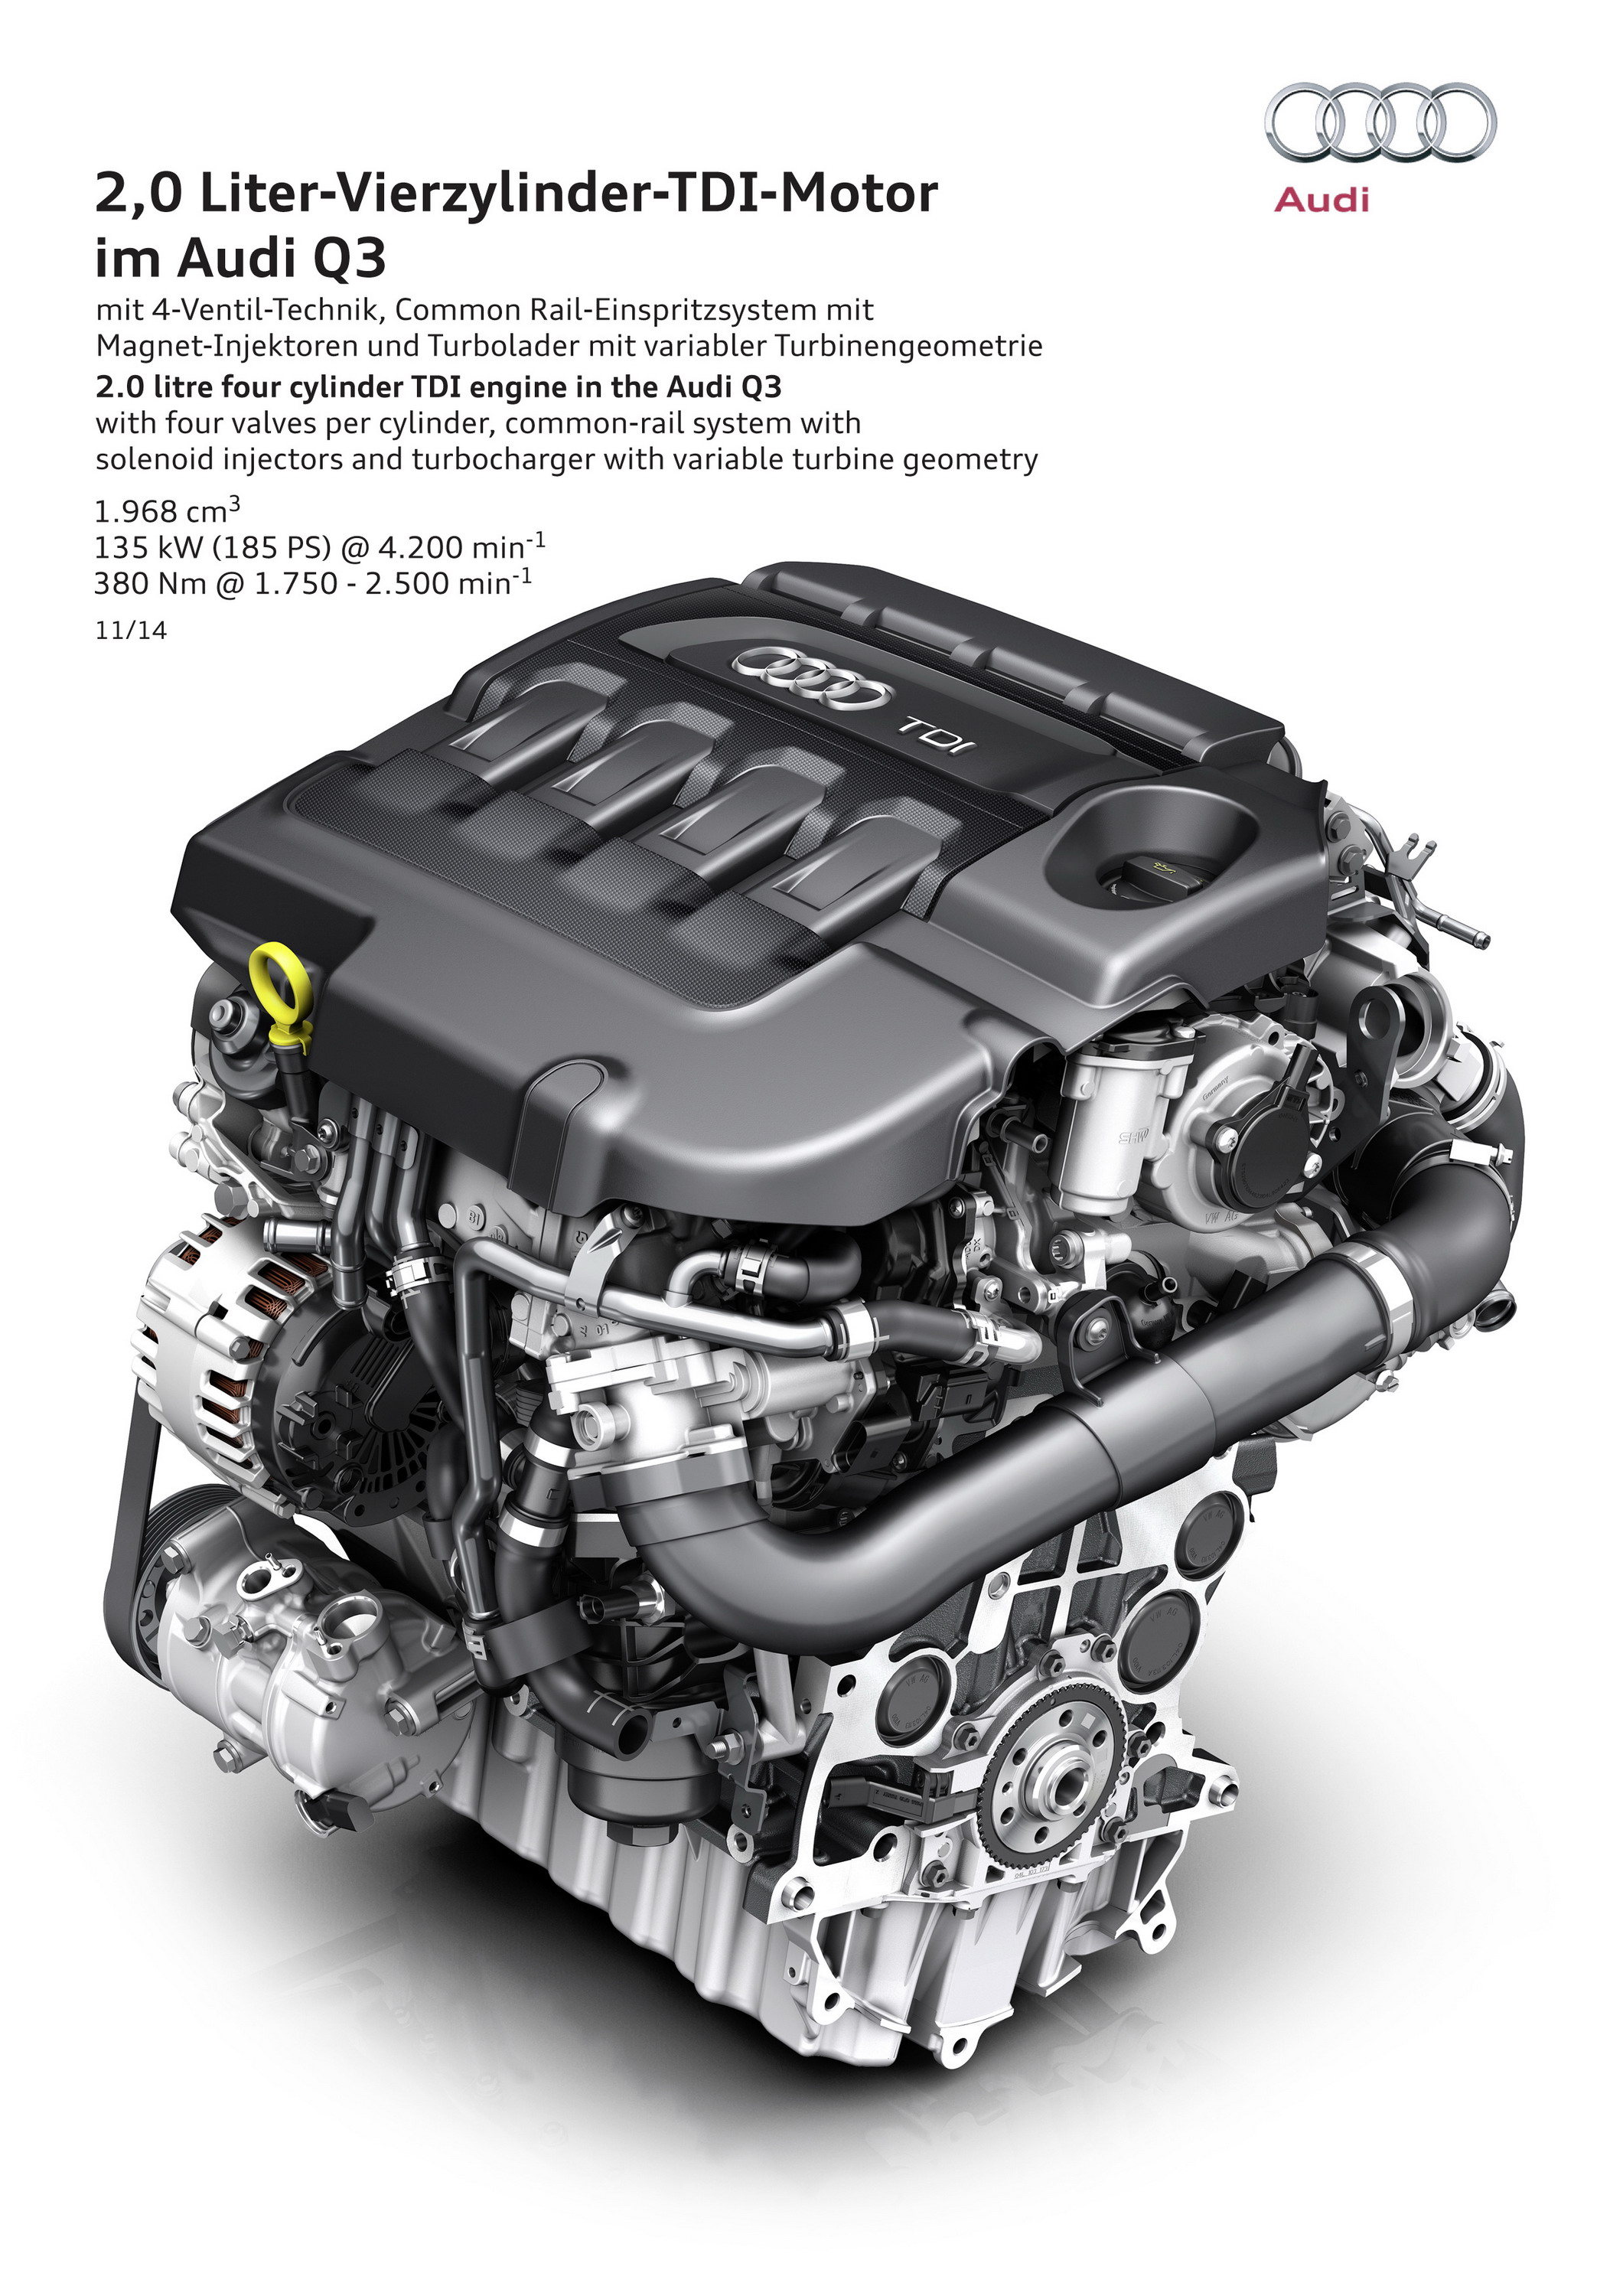 r on audivw chain timing vw layer album comments engines setup in tfsi audi